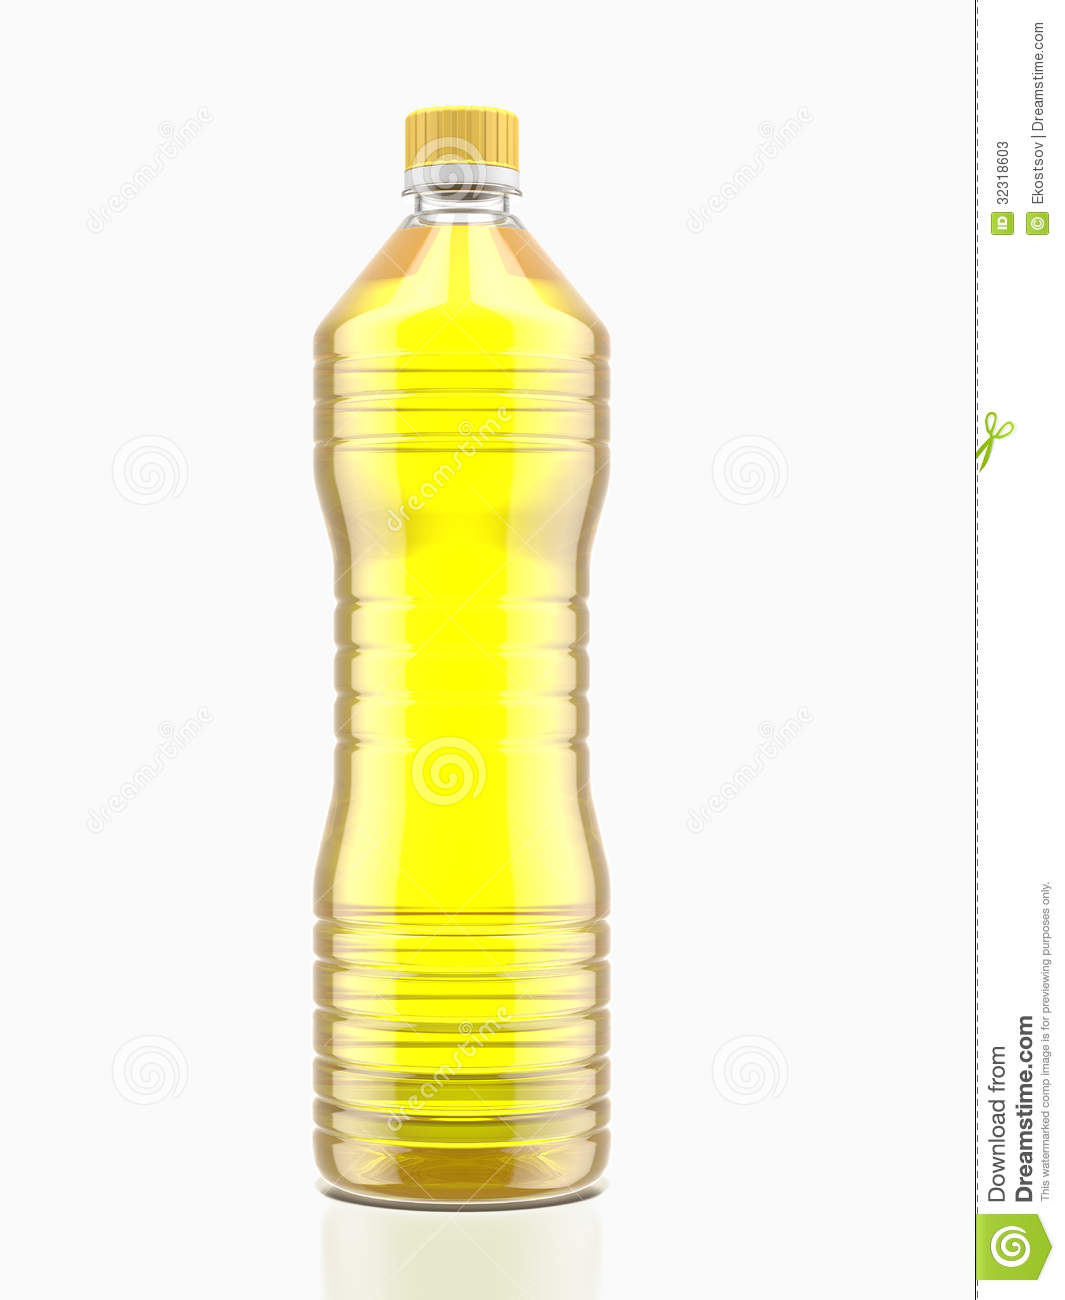 Bottle of cooking oil stock illustration image of object 32318603 - Many times can reuse frying oil ...